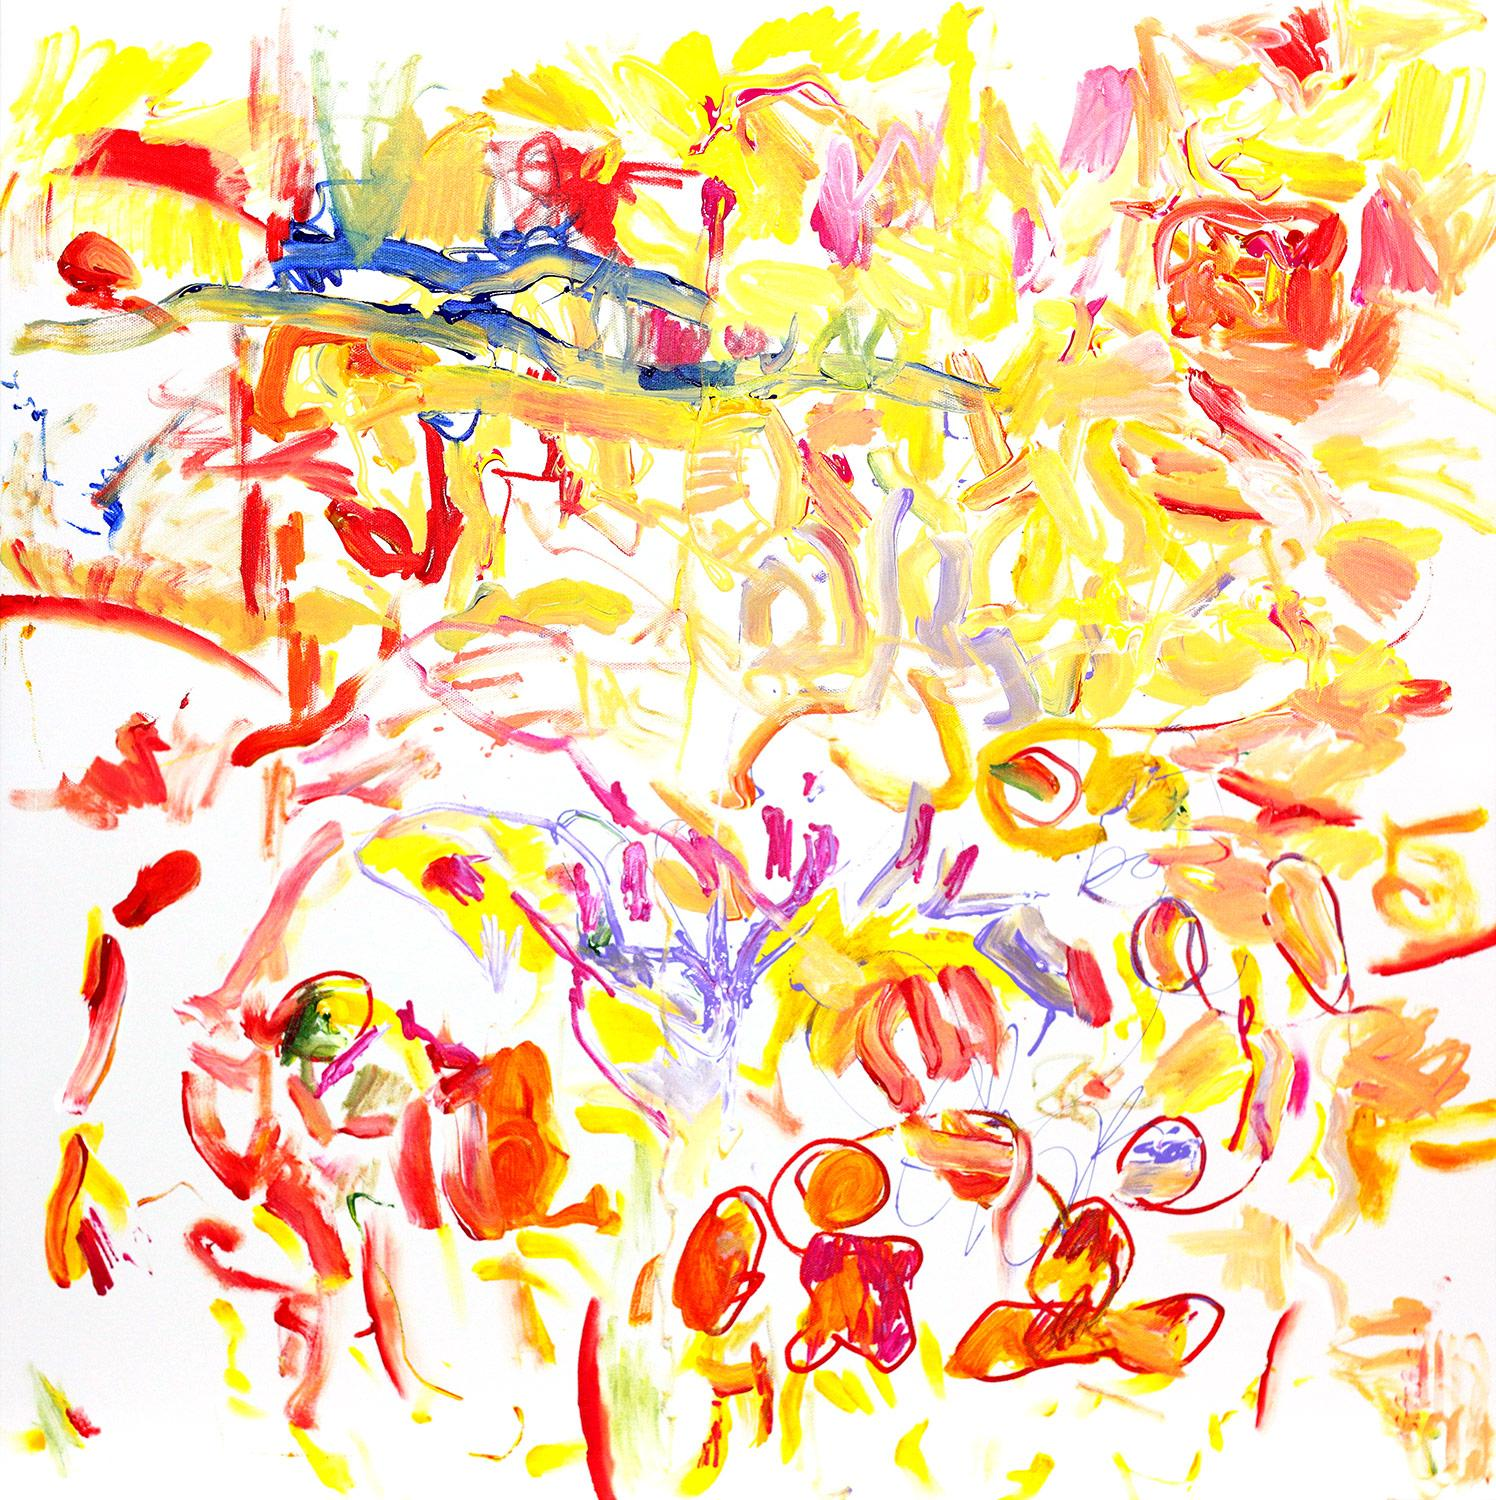 Waiting On The Heart, Abstract Expressionistic Painting